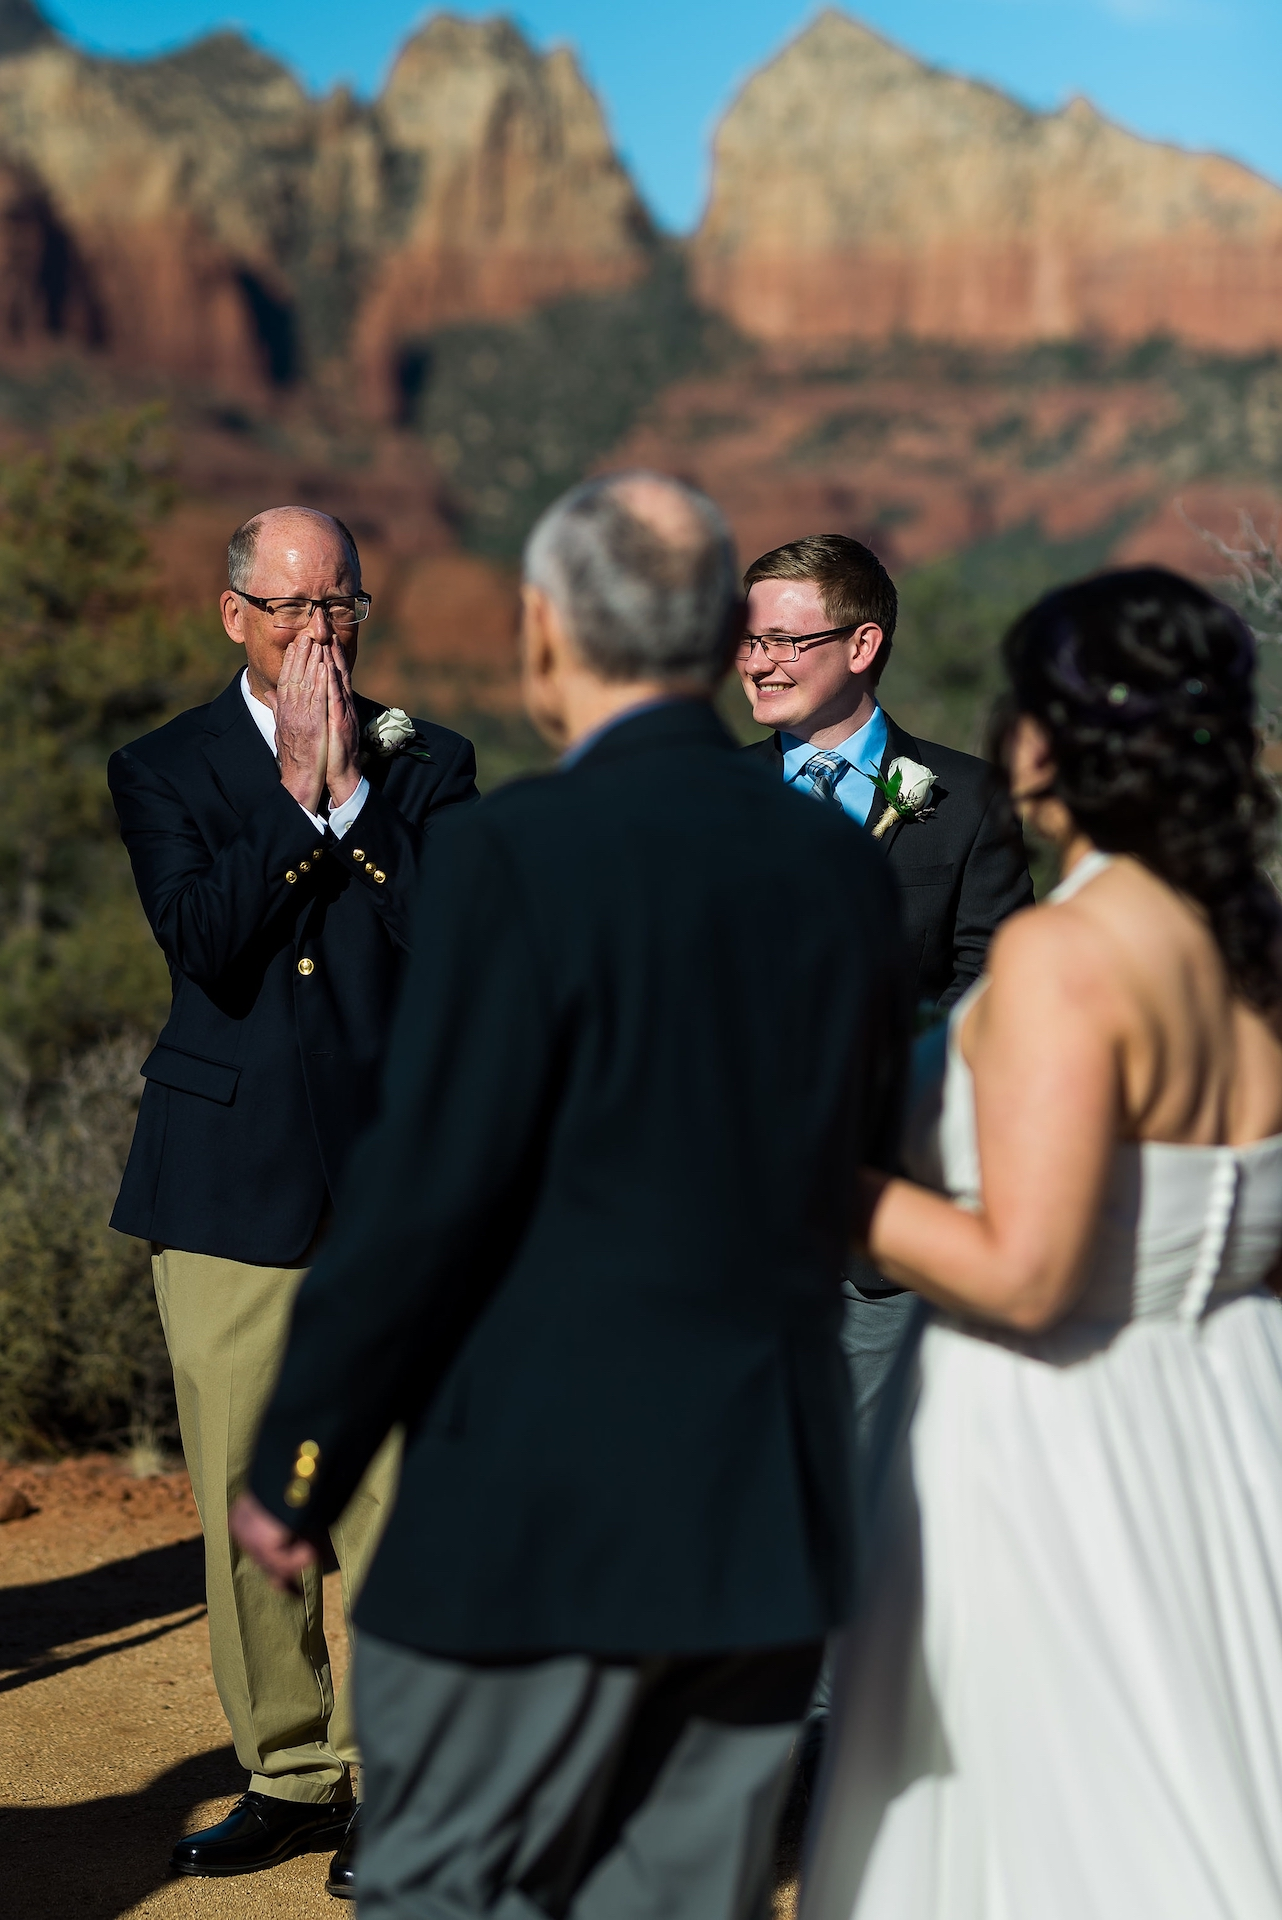 Outdoor Wedding Venue Pictures in Sedona, AZ | The groom reacts to seeing the bride for the first time